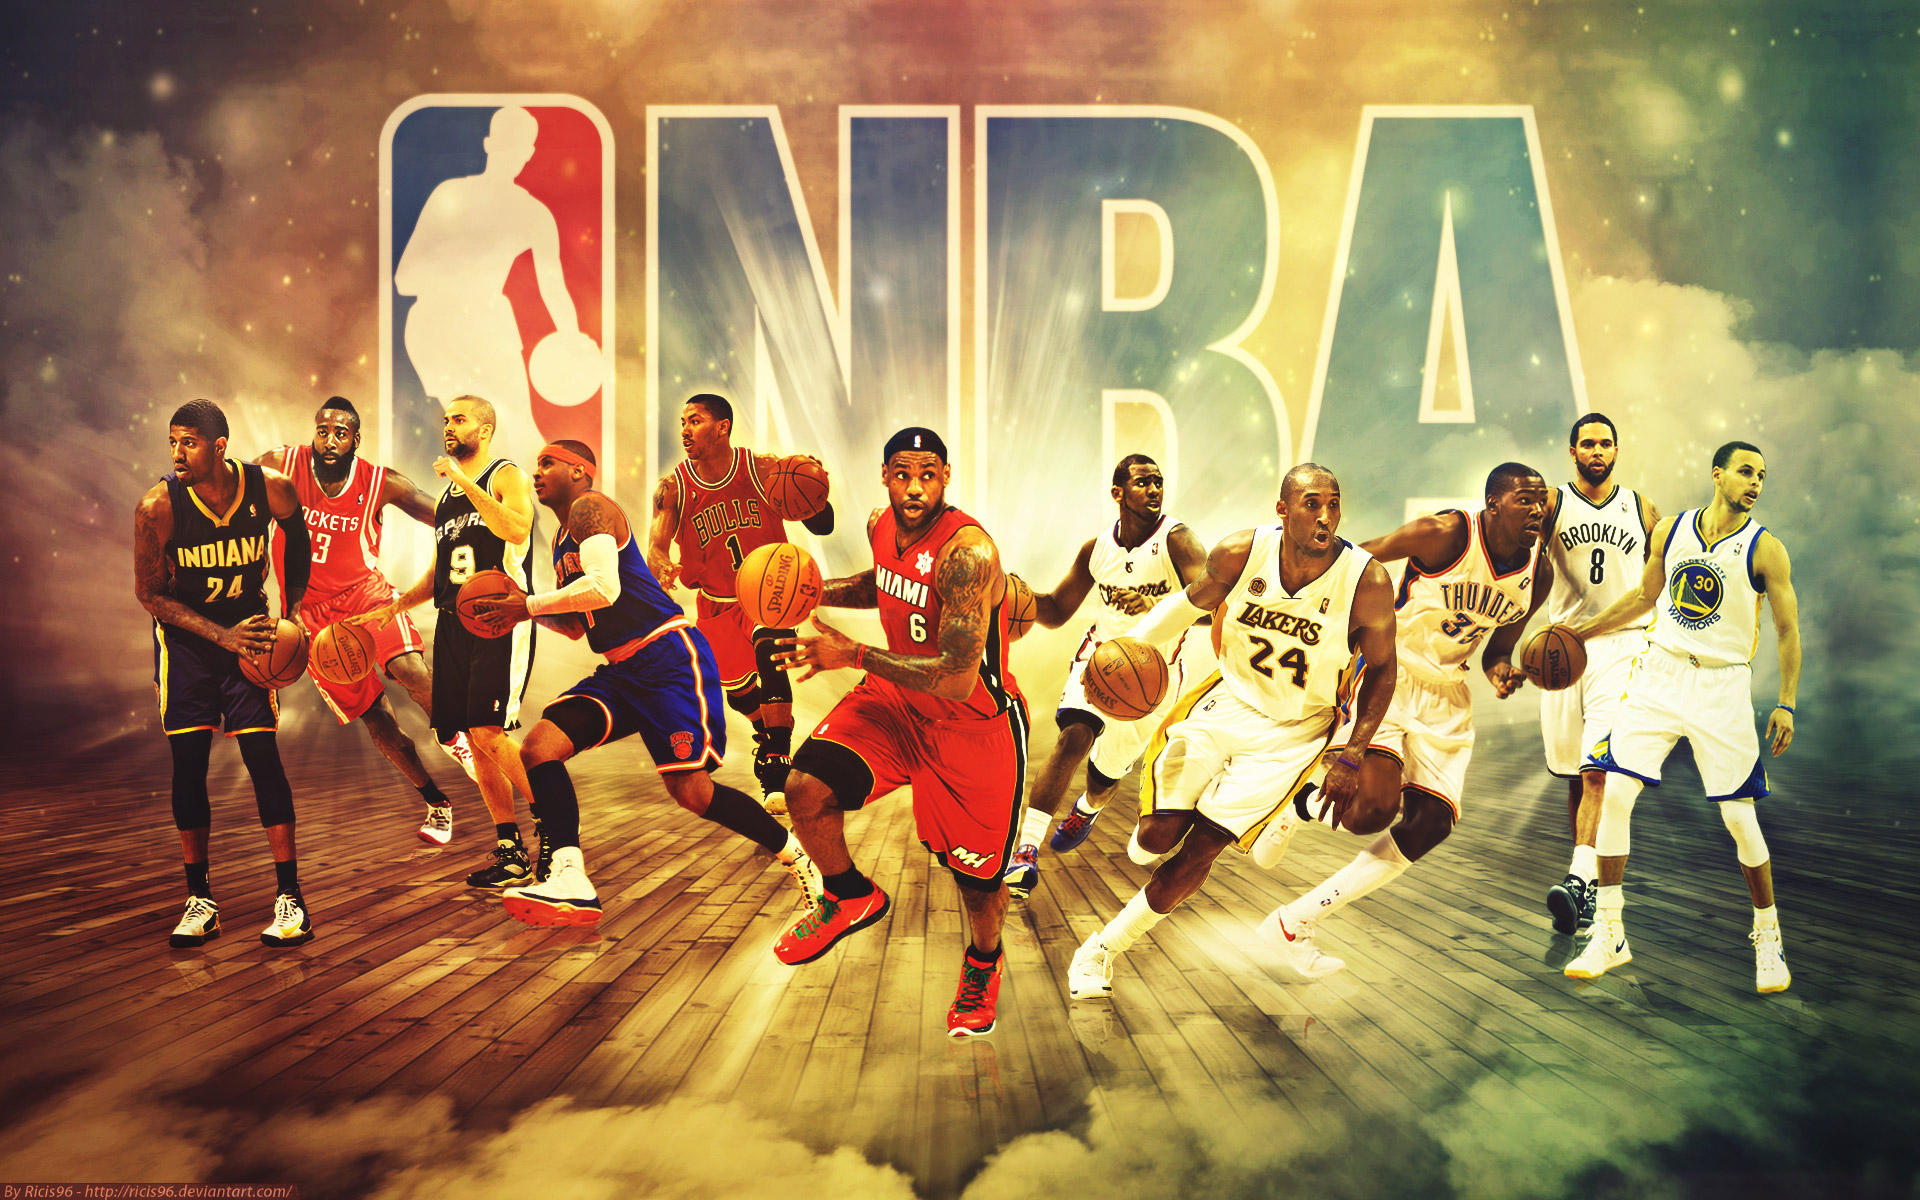 As low as near 80% off NBA Apparel & Gear @ Sports Authority